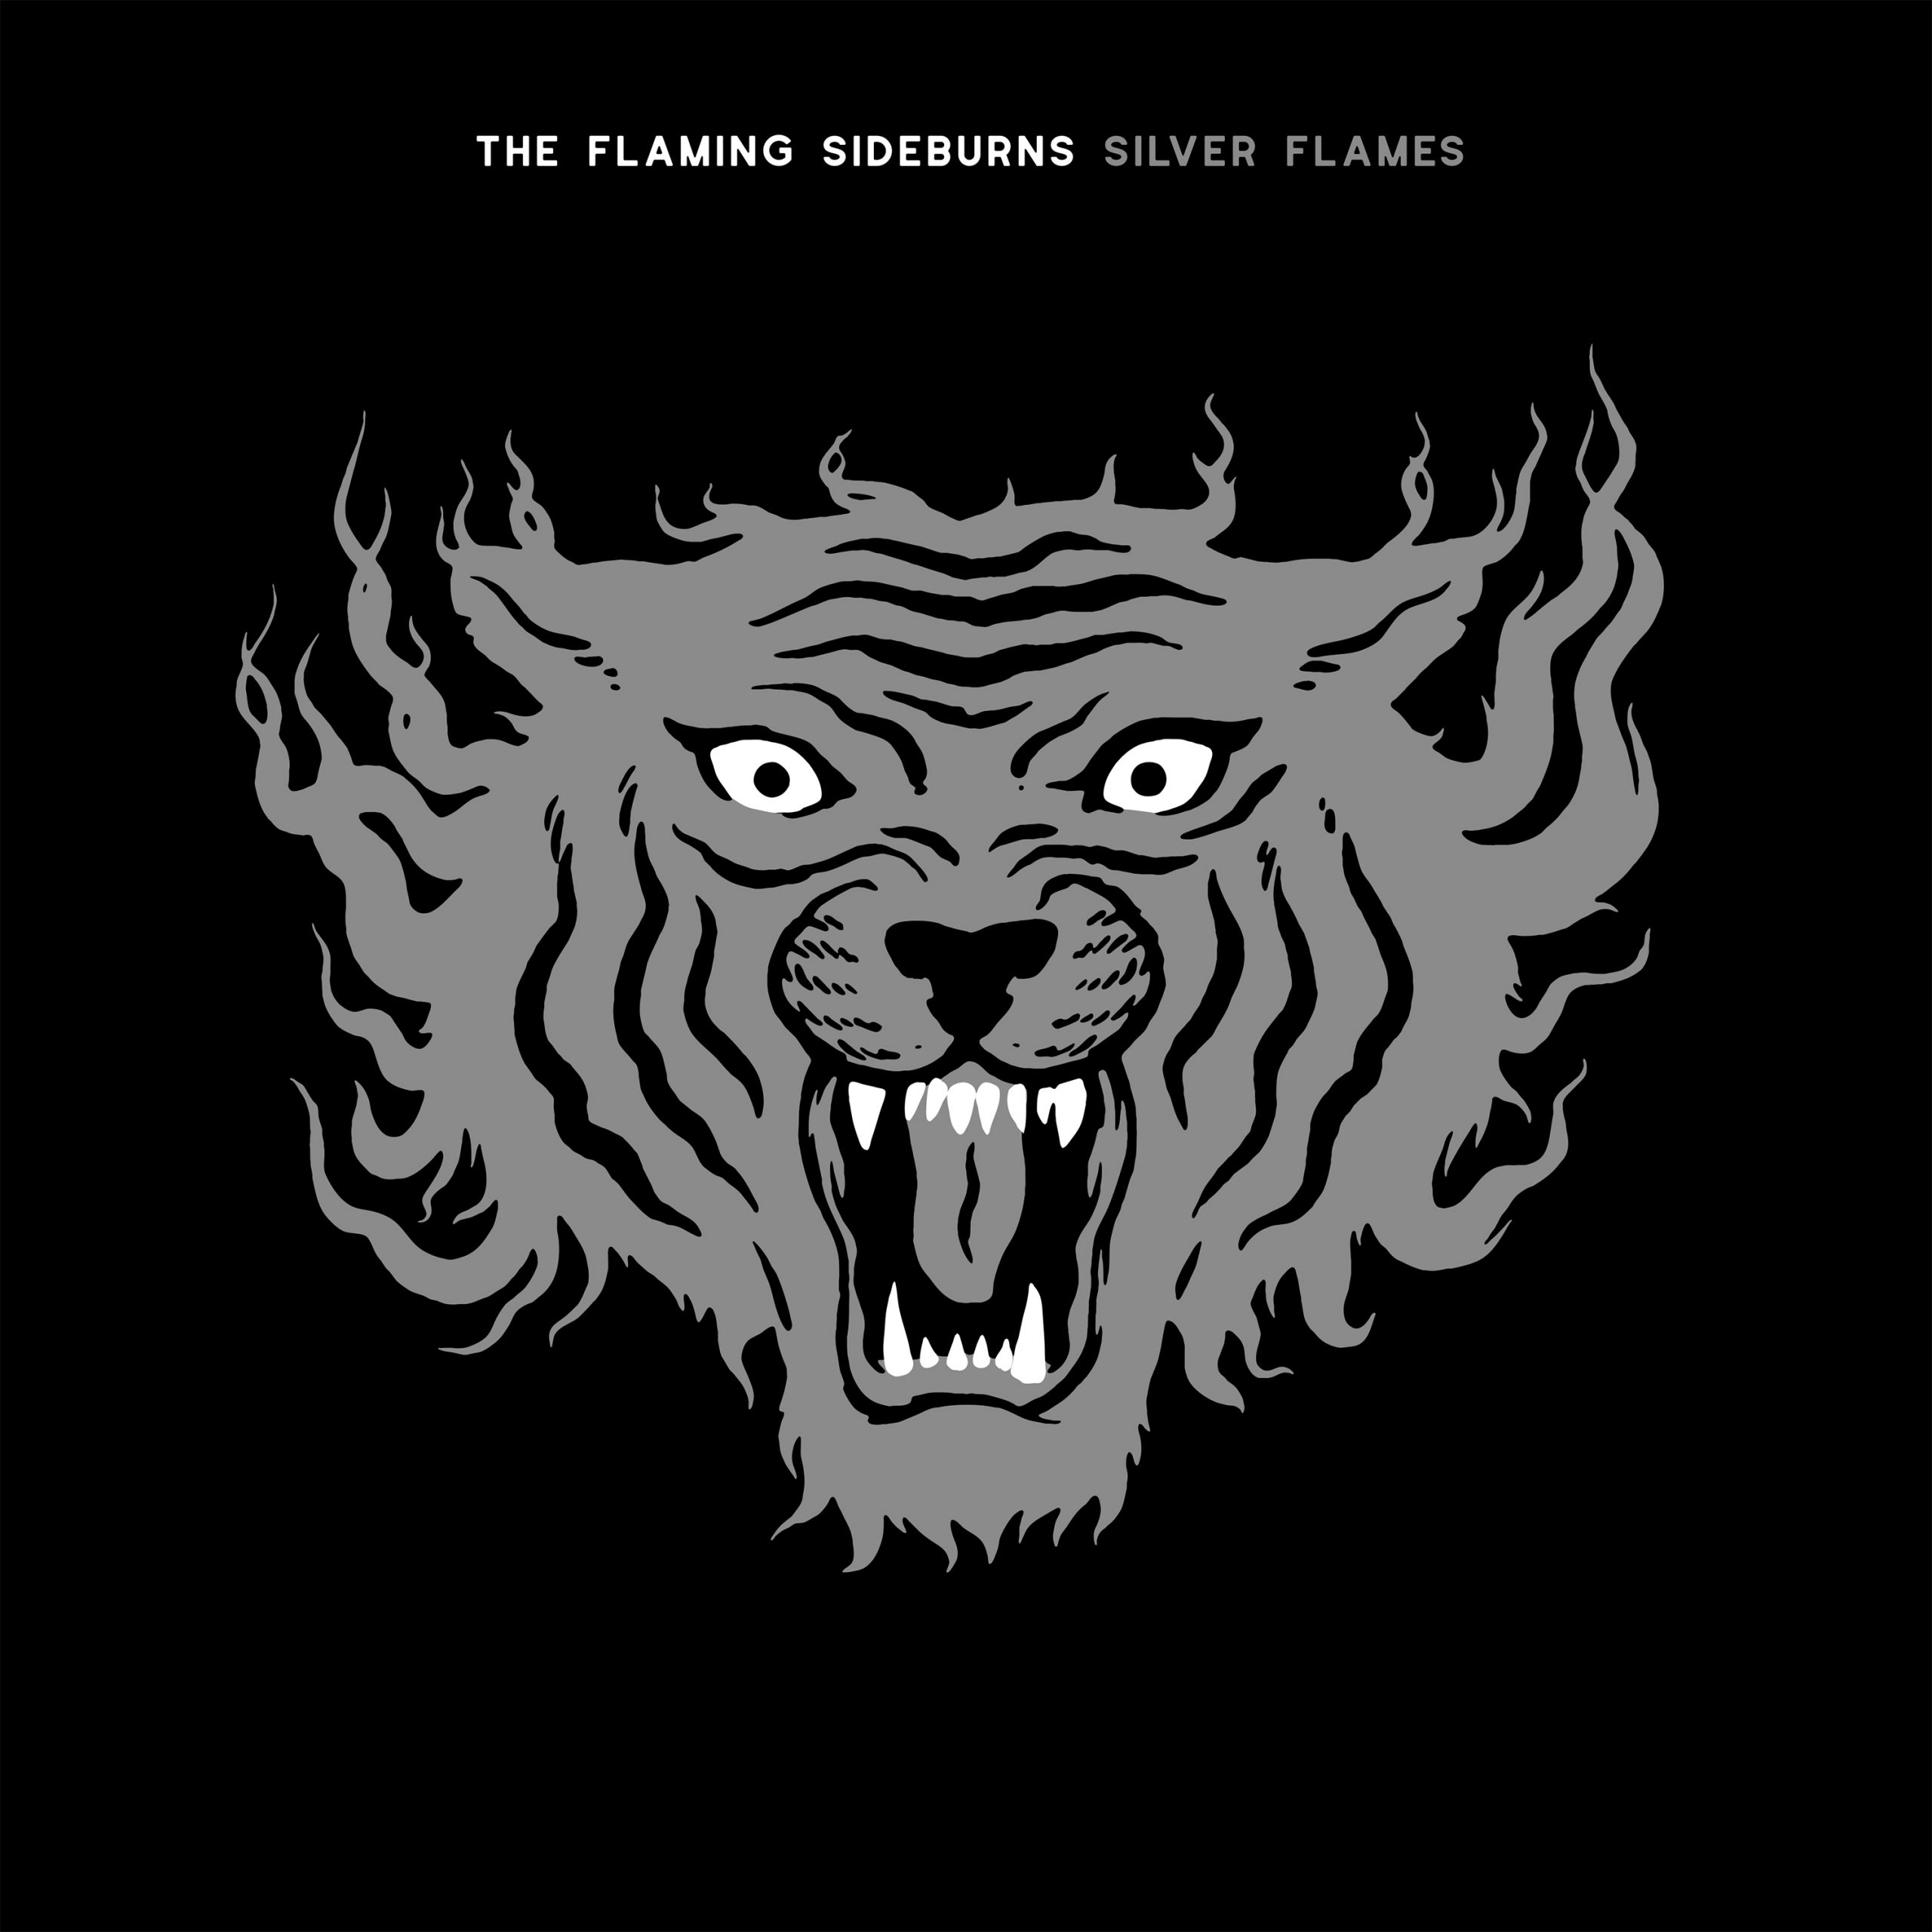 The-Flaming-Sideburns-Silver-Flames-cover-scaled